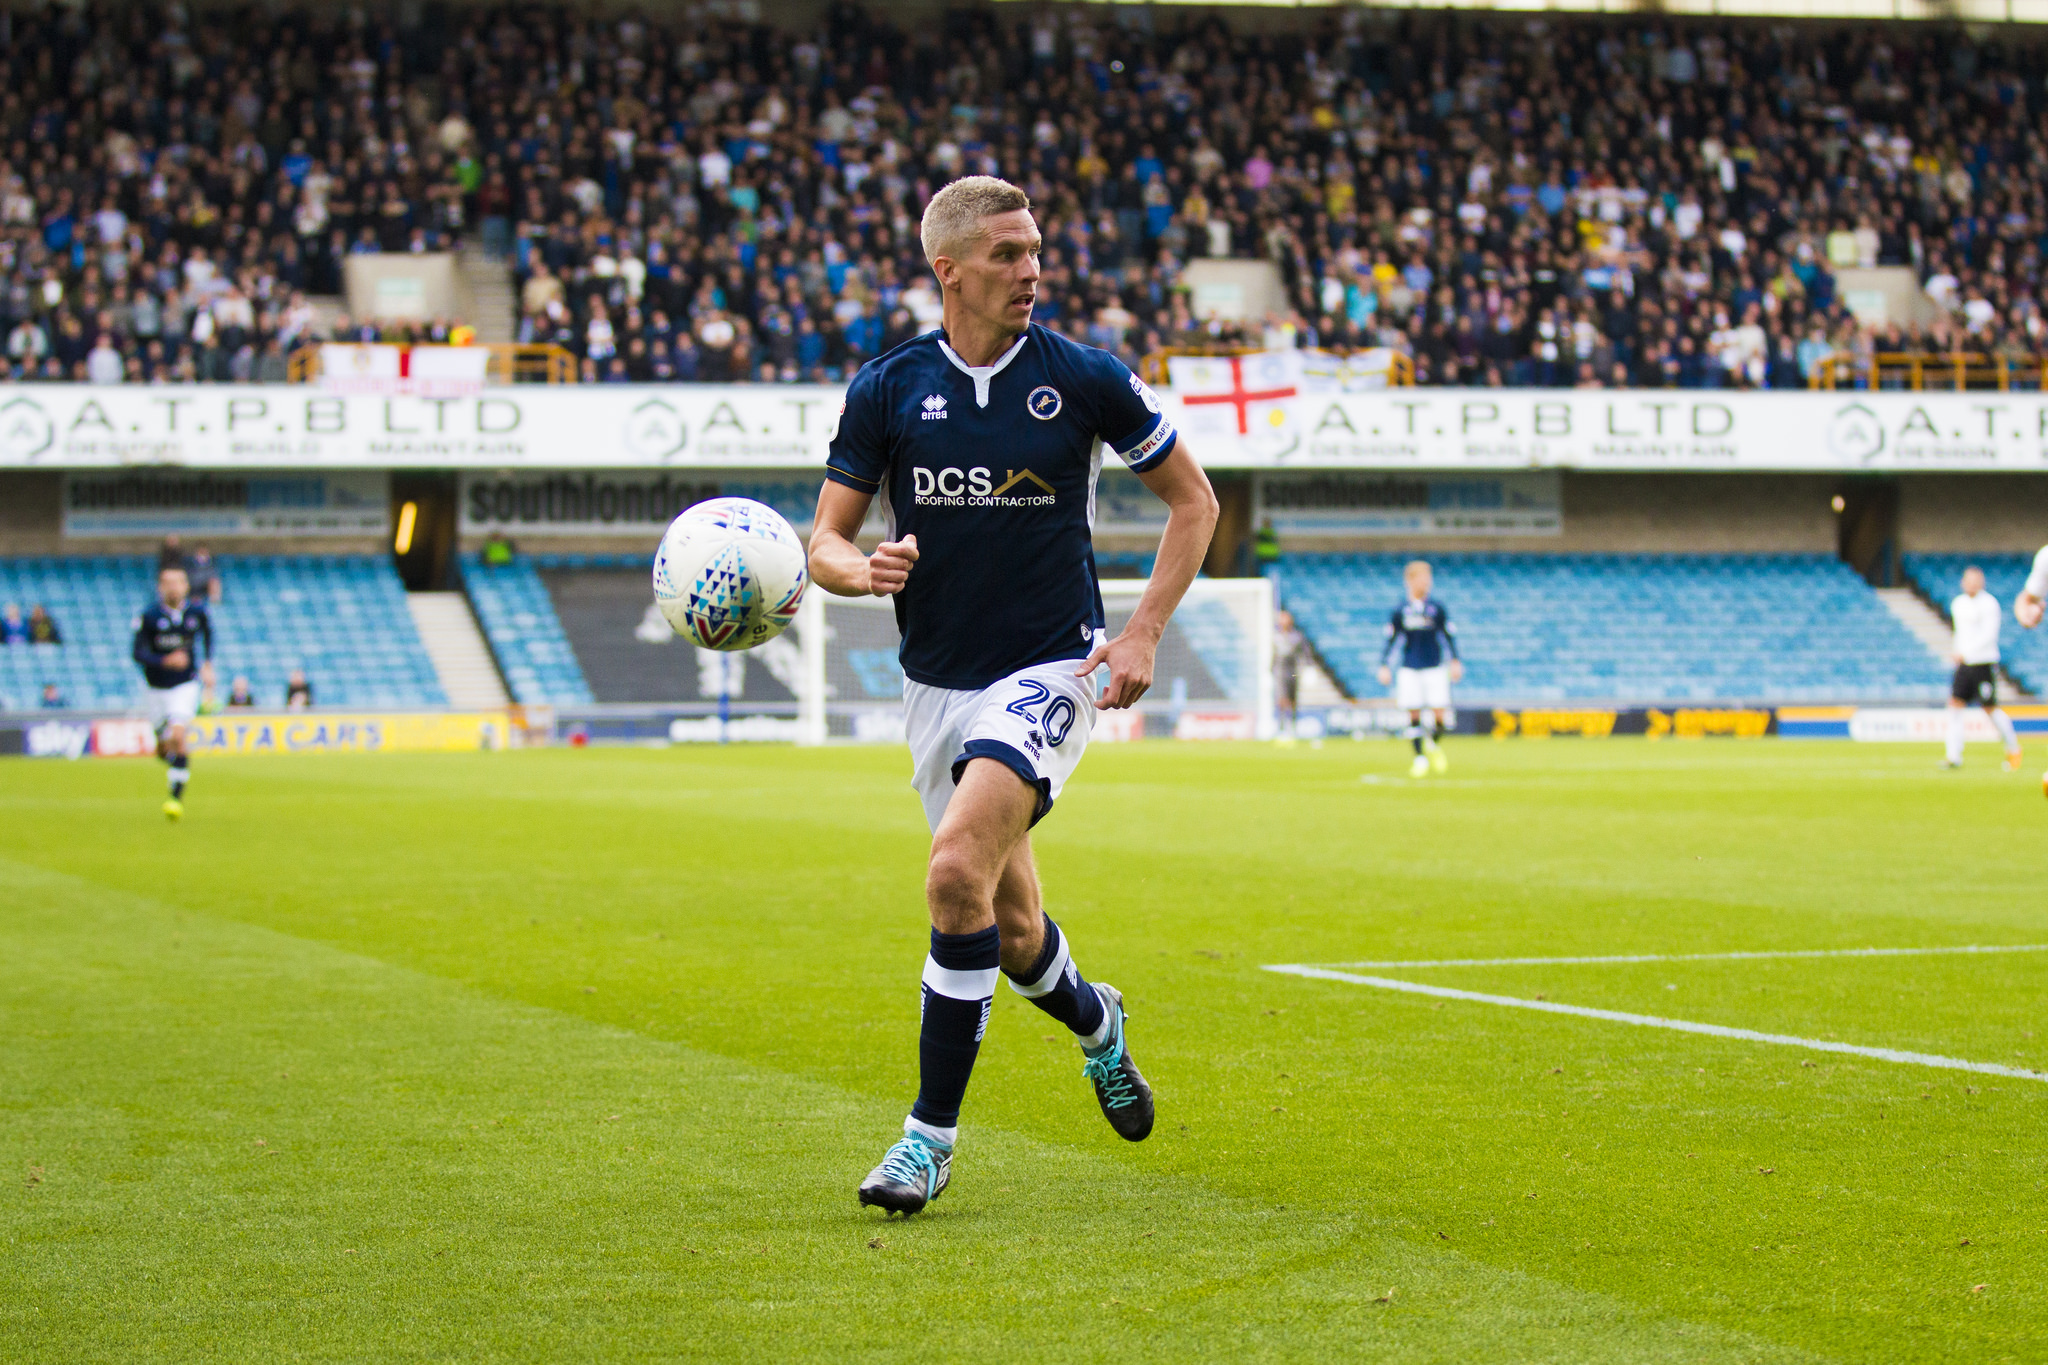 Steve Morison | Picture: Benjamin Peters Photography